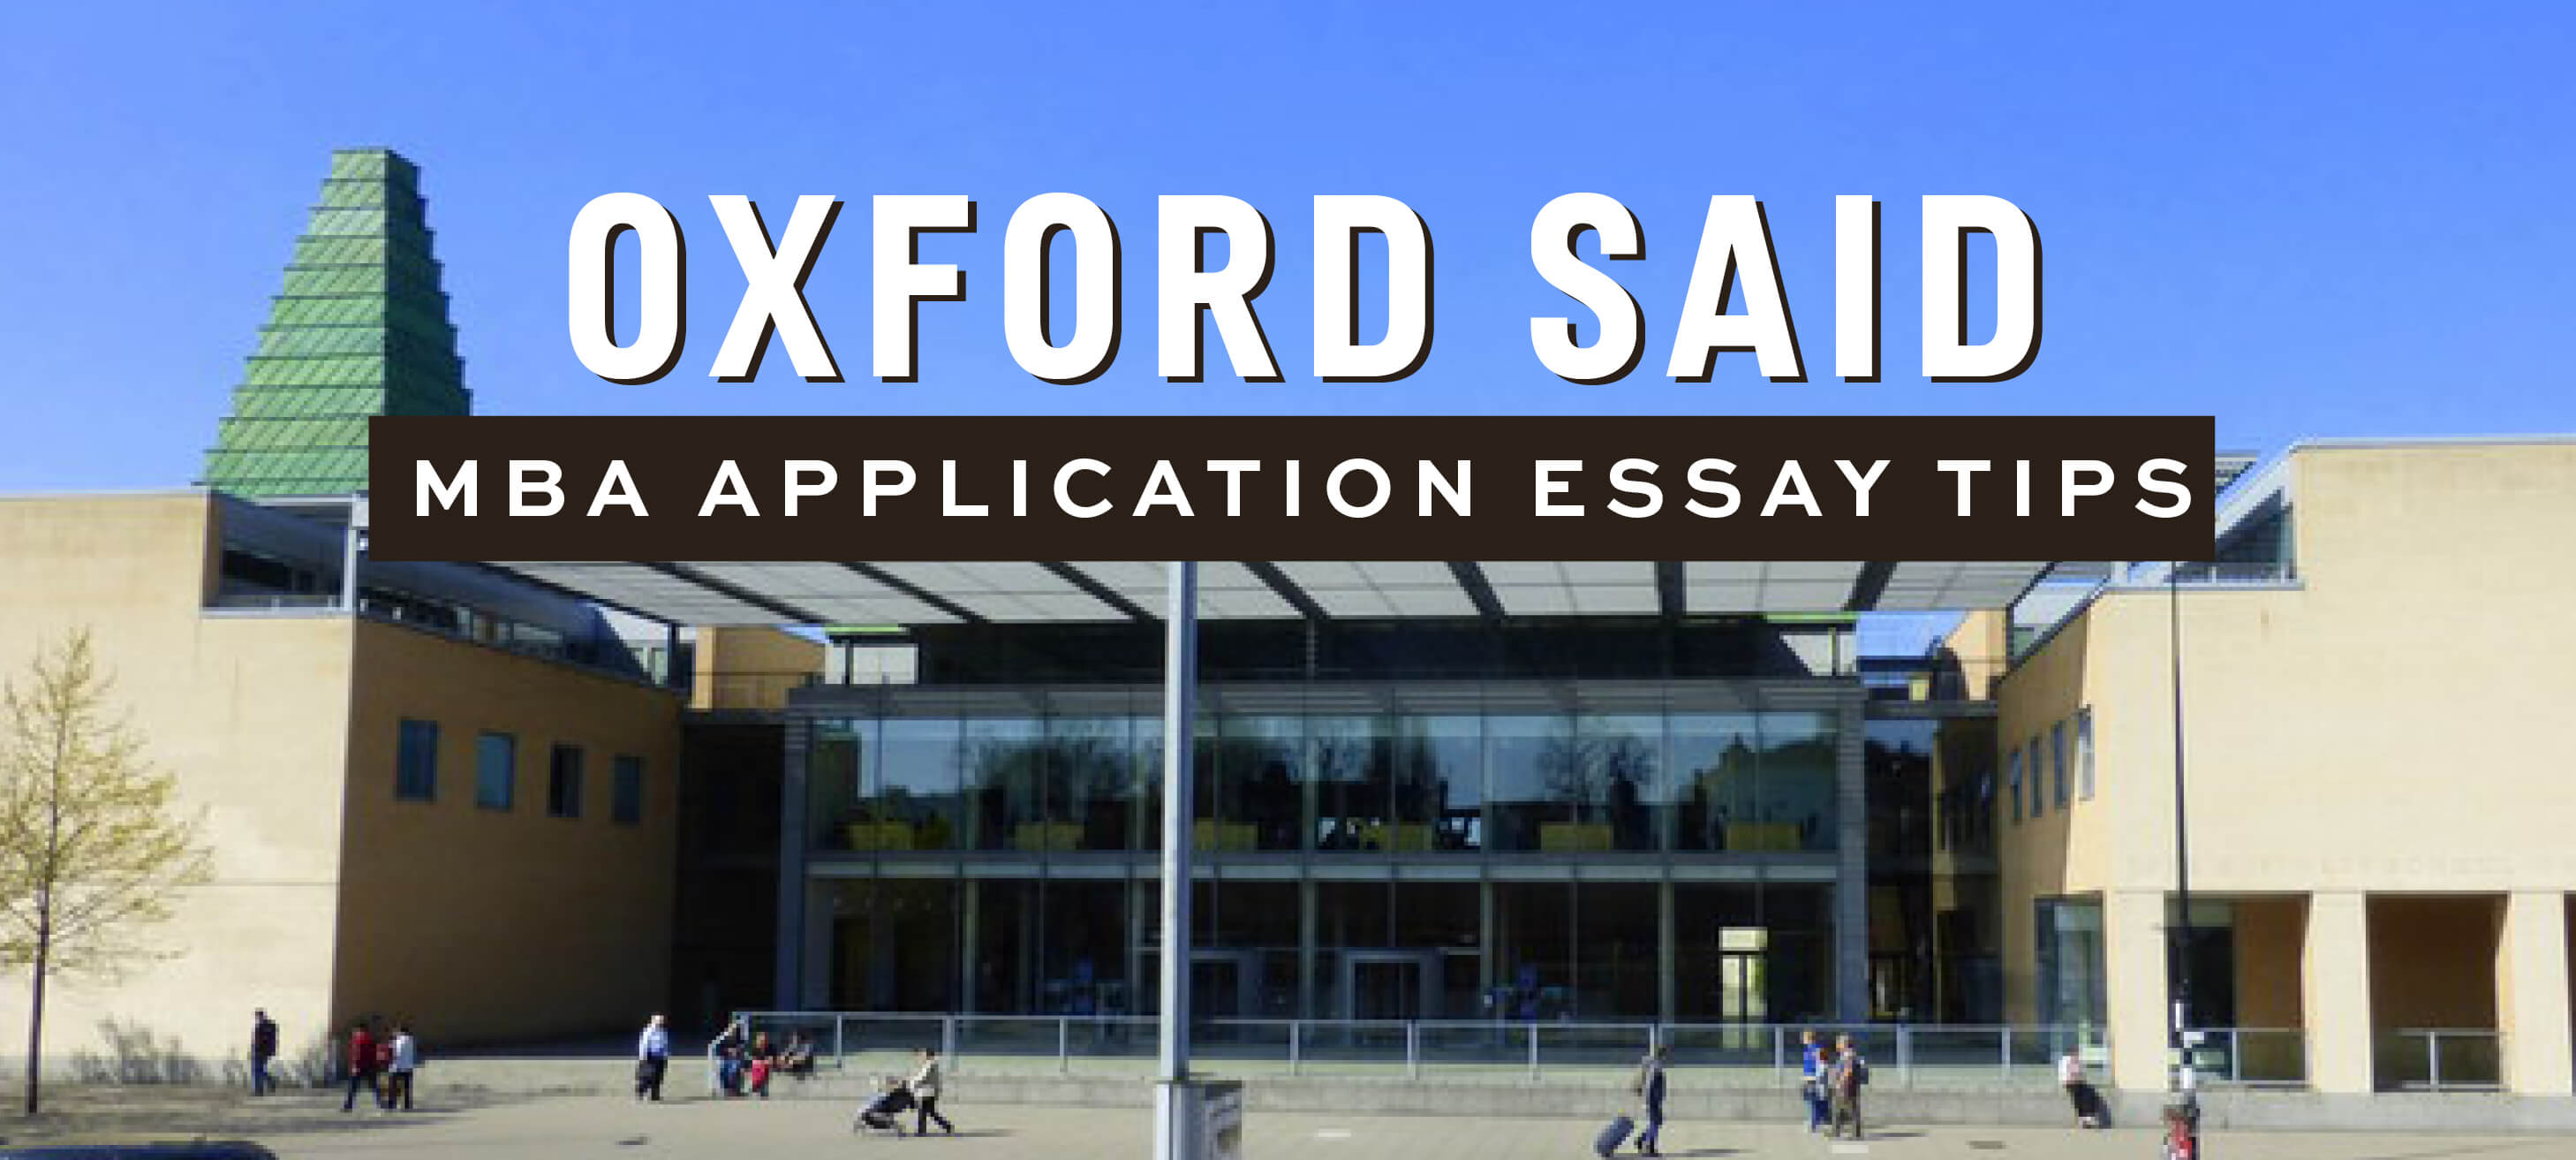 Mba application essay tips